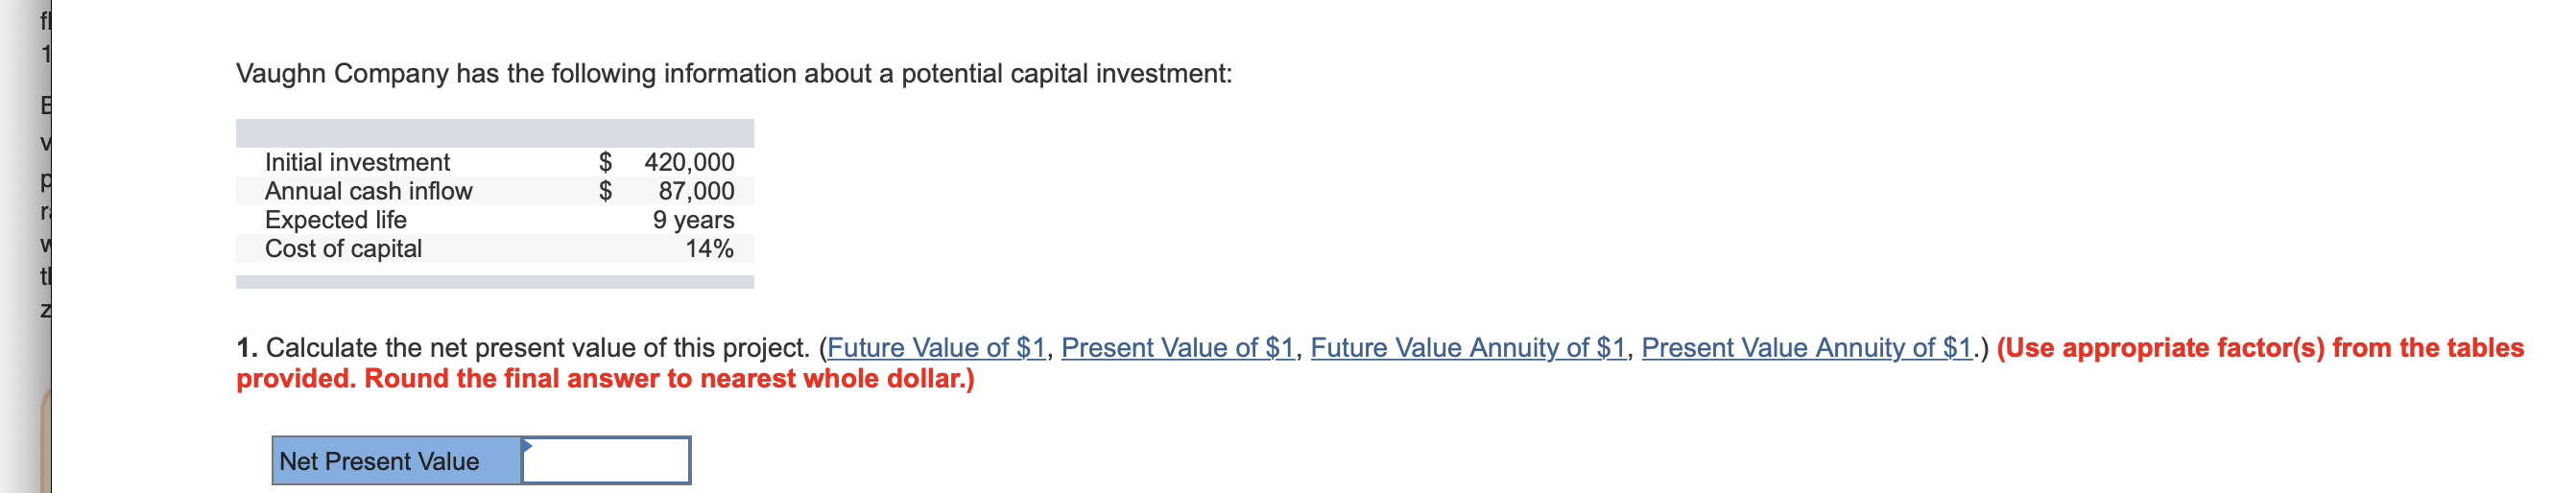 Vaughn Company has the following information about a potential capital investment: V $ 420,000 $ Initial investment Annual cash inflow 87,000 9 years 14% Expected life Cost of capital V tl 1. Calculate the net present value of this project. (Future Value of $1, Present Value of $1, Future Value Annuity of $1, Present Value Annuity of $1.) (Use appropriate factor(s) from the tables provided. Round the final answer to nearest whole dollar.) Net Present Value